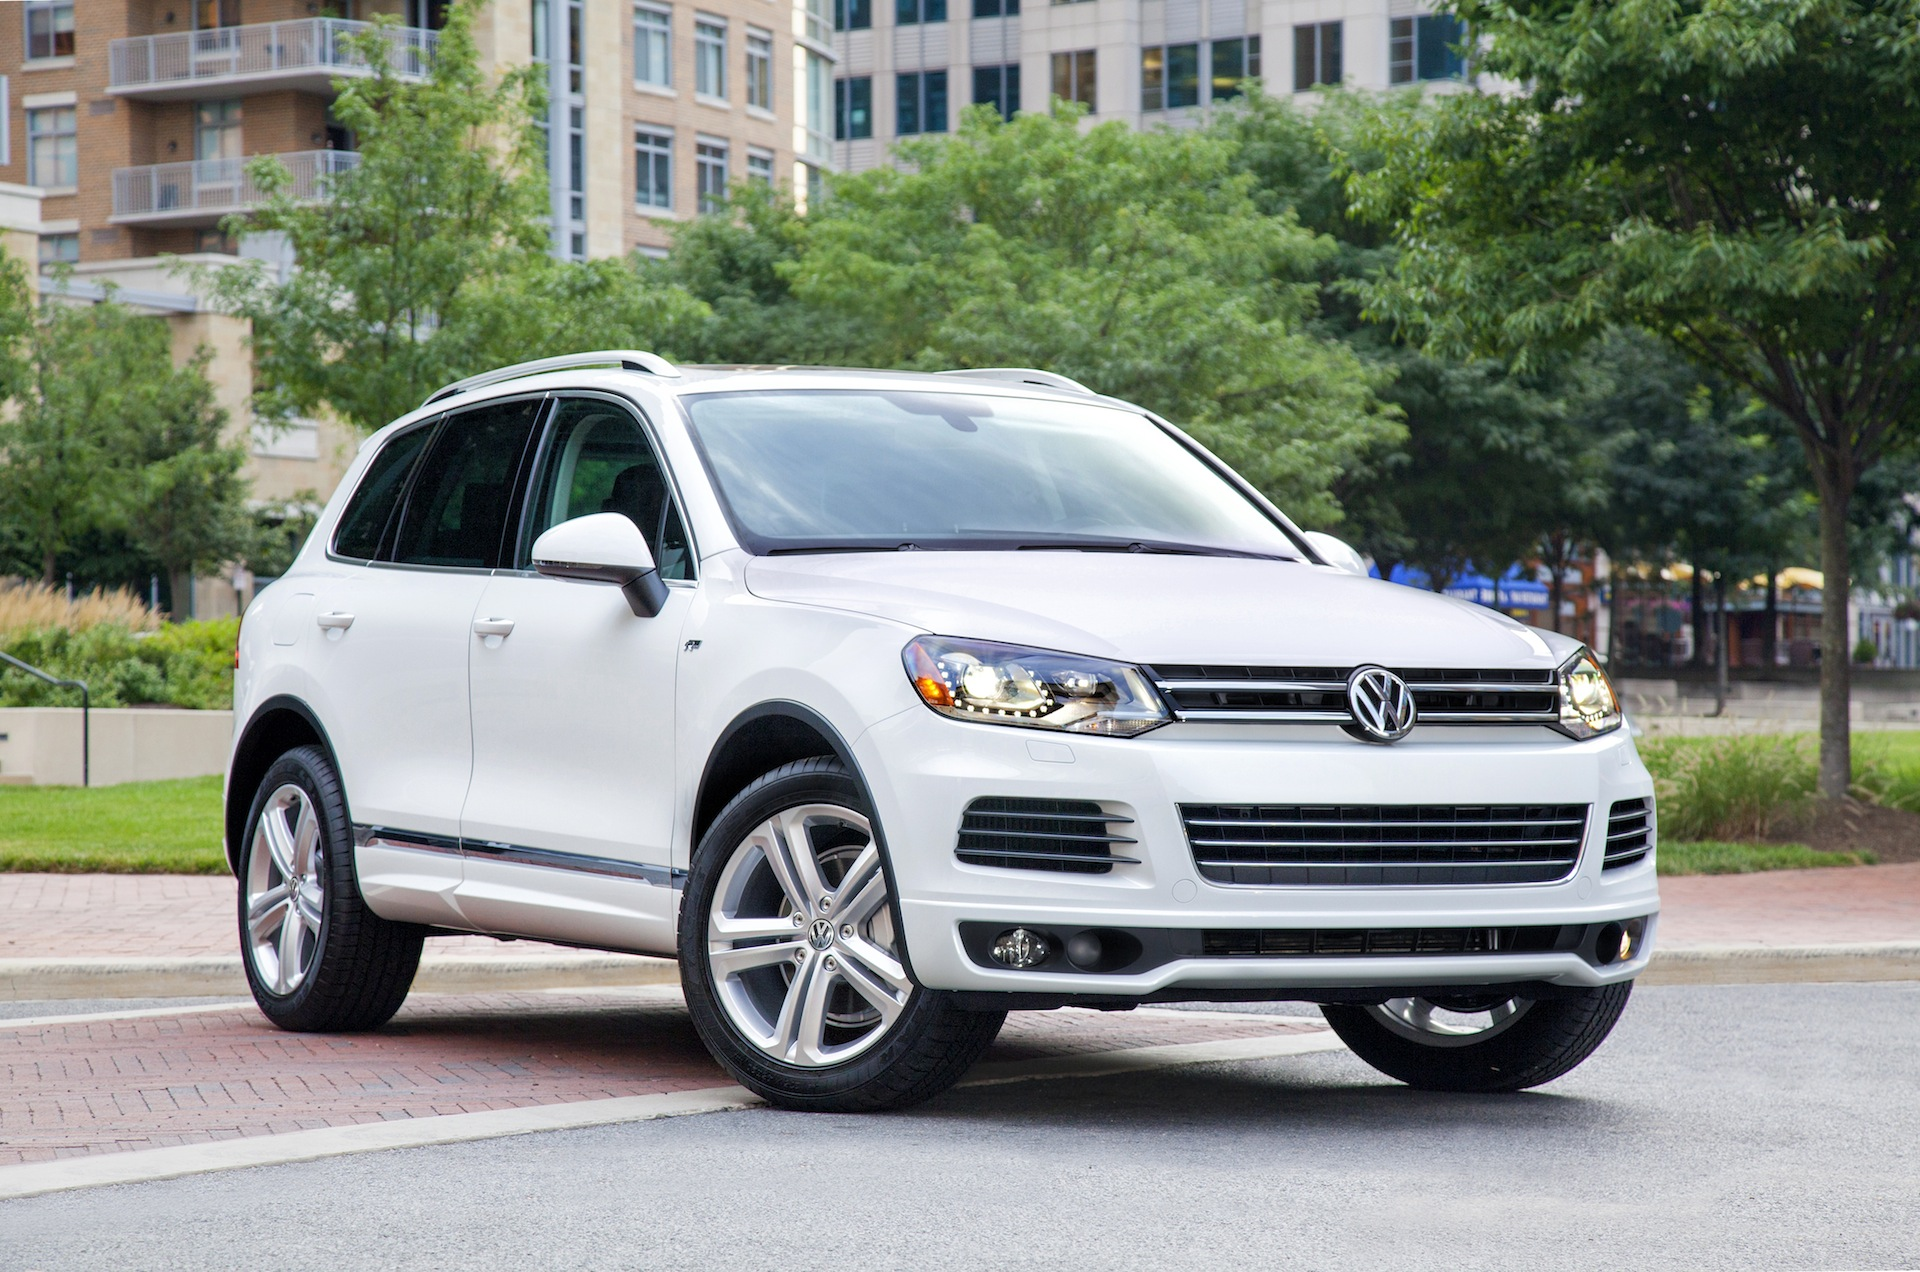 2014 Volkswagen Touareg Vw Performance Review The Car